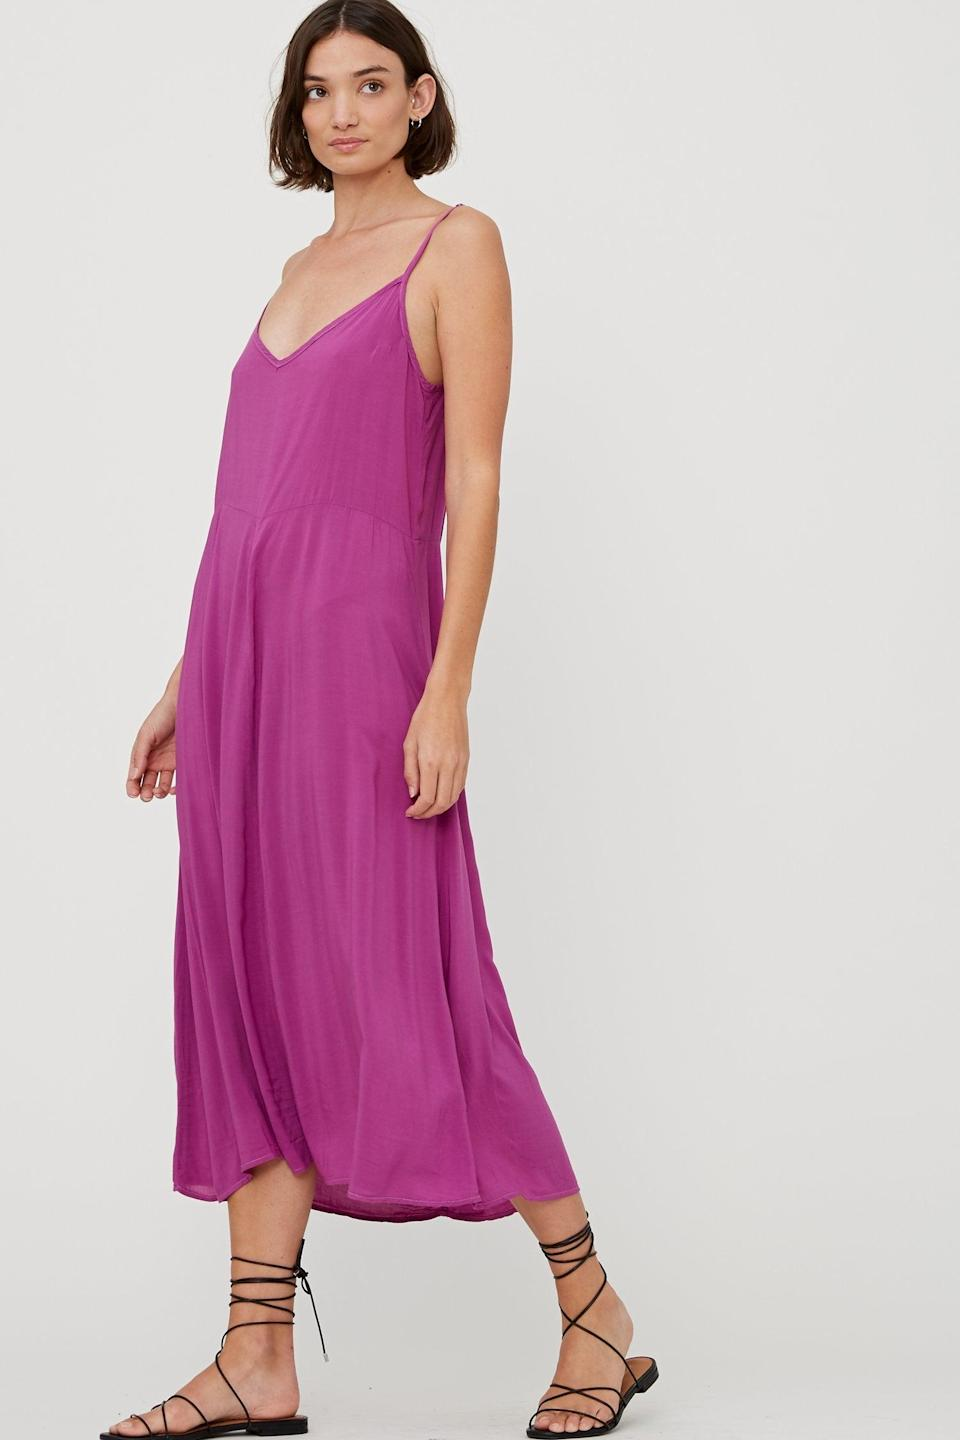 """<h2>Lacausa Stevie Slipdress</h2><br>Contrary to popular belief, the slipdress is a surprisingly versatile year-round frock. While you'll wear it all by its lonesome in the sweltering summer months, it's an easy-to-layer fall staple that can be thrown over a turtleneck, bodysuit, or leggings when the weather cools. We love this eye-catching option from California-based Lacausa, an indie brand that manufactures locally and makes <a href=""""https://www.lacausaclothing.com/pages/our-cause"""" rel=""""nofollow noopener"""" target=""""_blank"""" data-ylk=""""slk:regular donations to organizations"""" class=""""link rapid-noclick-resp"""">regular donations to organizations</a> like Black Lives Matter, Baby2Baby, and the Los Angeles Food Bank.<br><br><strong>Lacausa</strong> Stevie Slipdress, $, available at <a href=""""https://go.skimresources.com/?id=30283X879131&url=https%3A%2F%2Fwww.lacausaclothing.com%2Fcollections%2Funder-100%2Fproducts%2Fstevie-slip-fuschia"""" rel=""""nofollow noopener"""" target=""""_blank"""" data-ylk=""""slk:LACAUSA"""" class=""""link rapid-noclick-resp"""">LACAUSA</a>"""